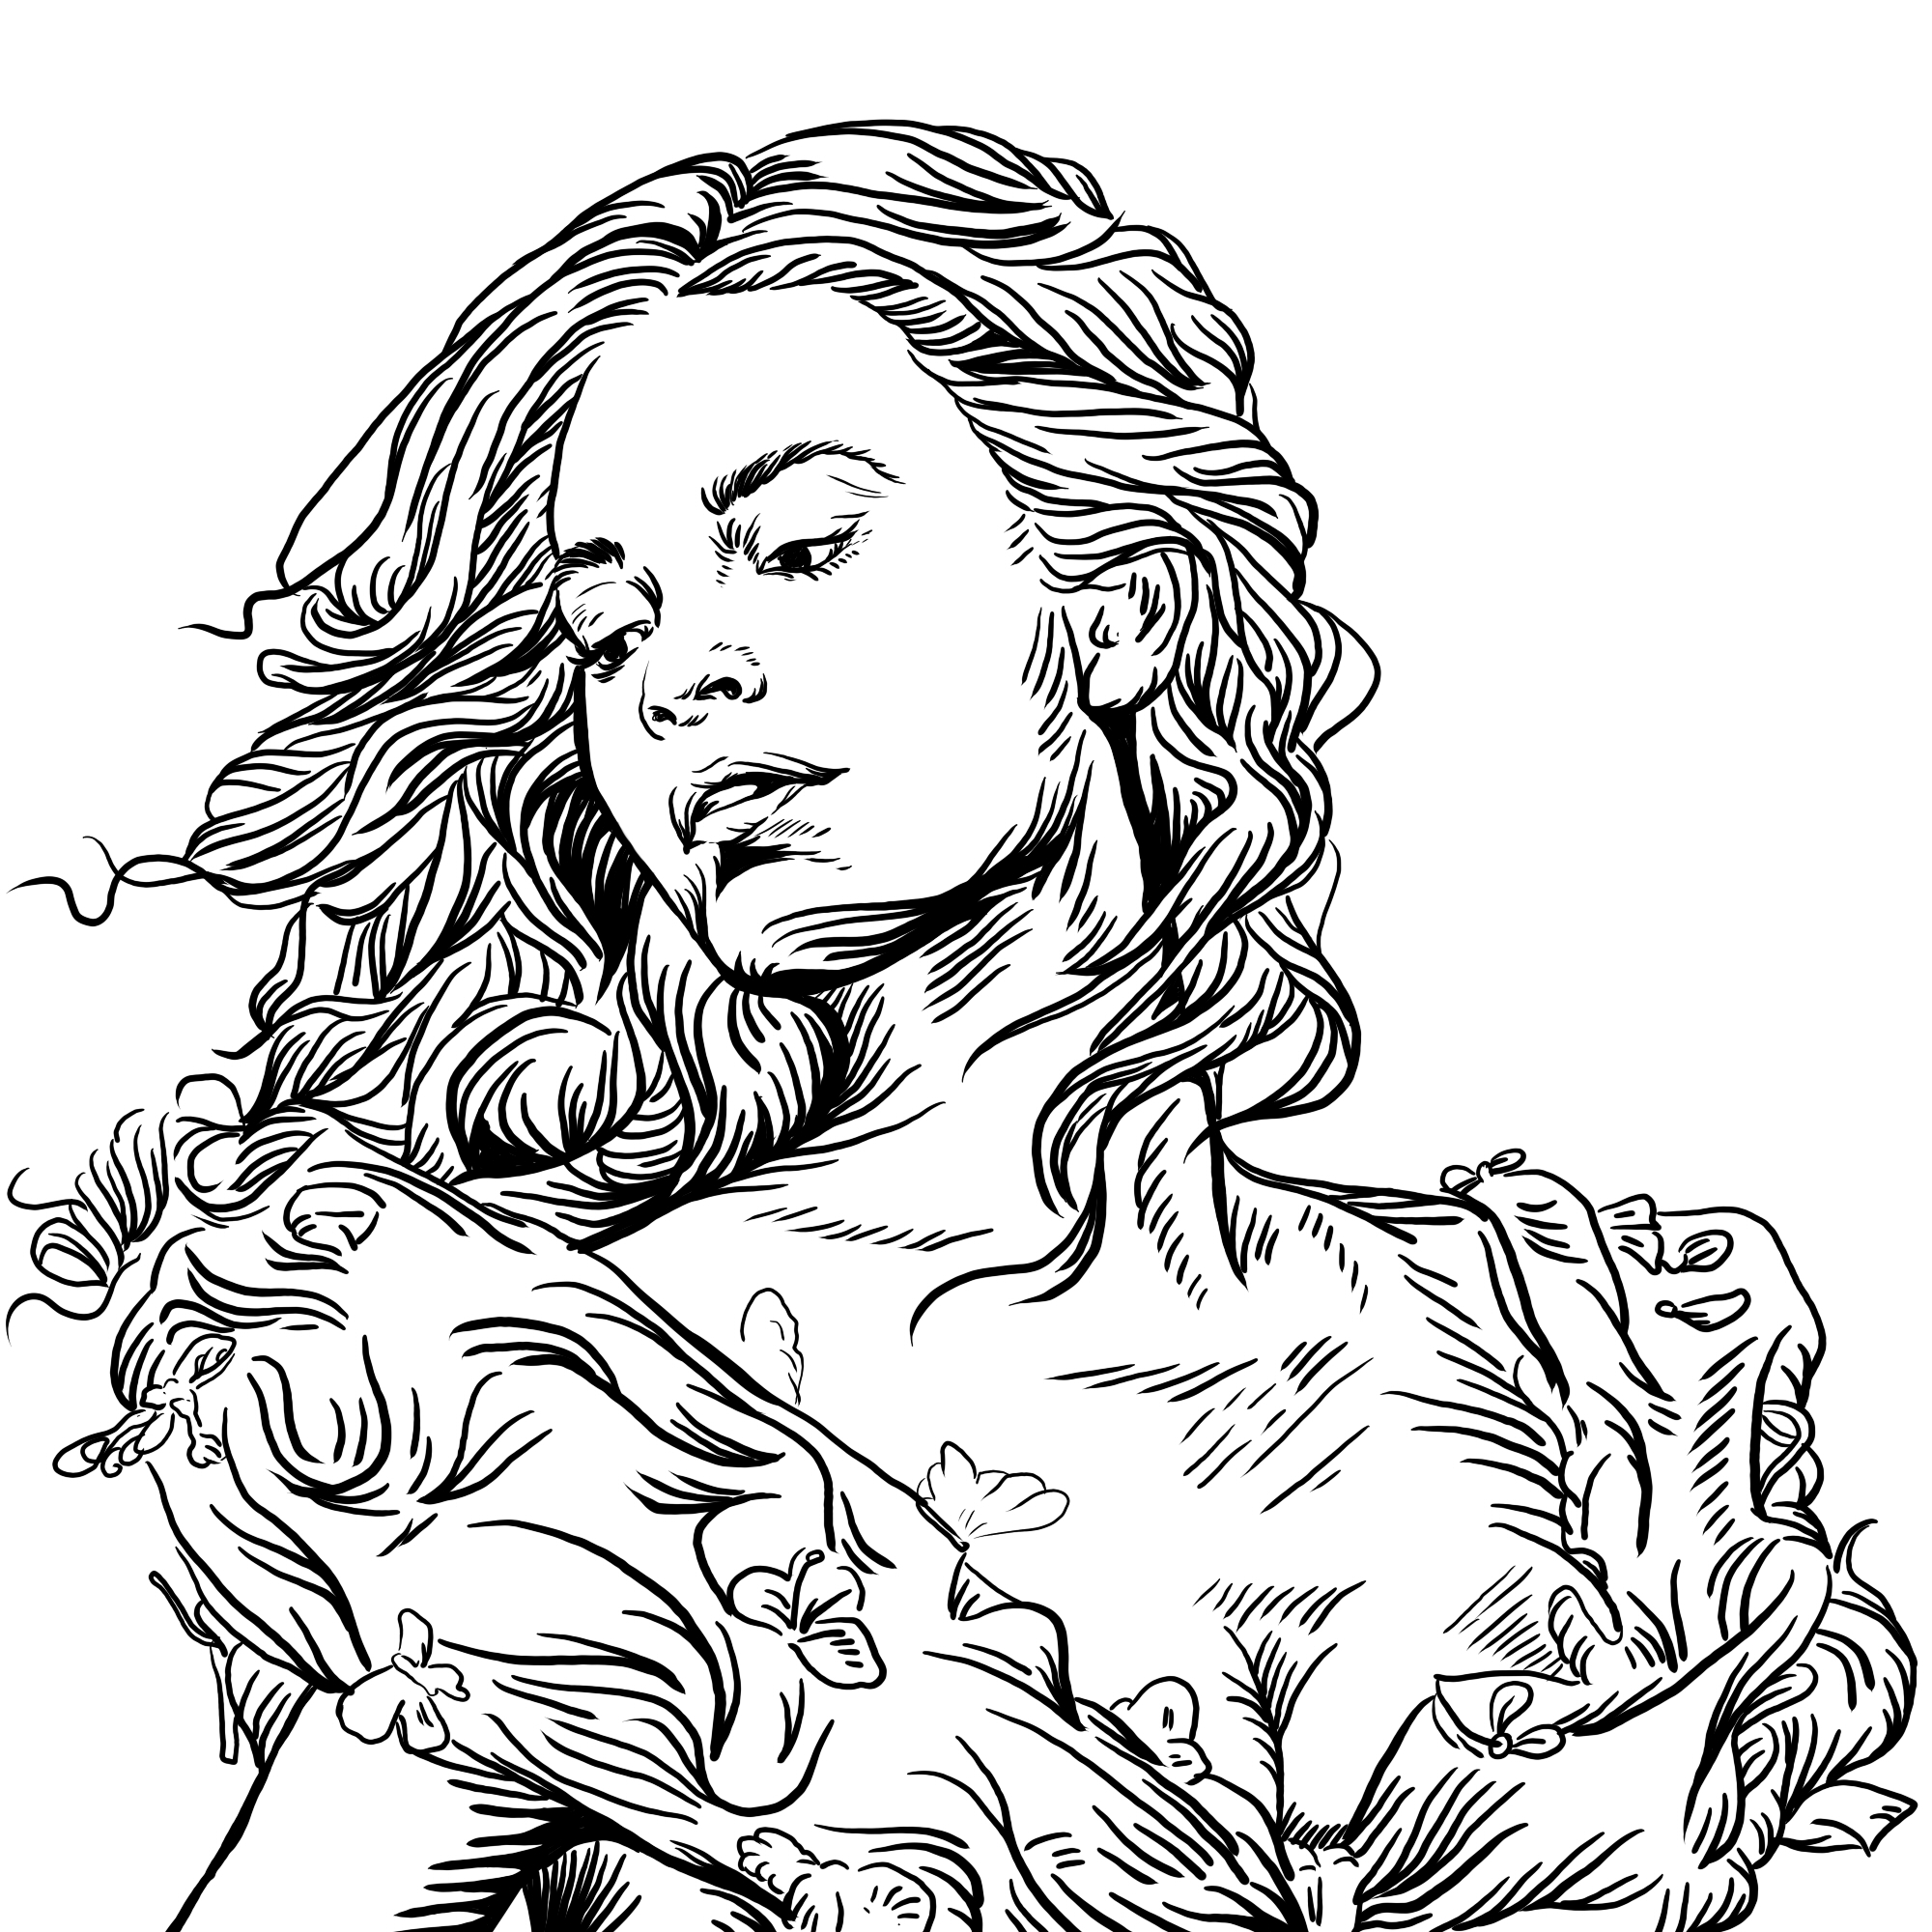 draw lineArt of your photo